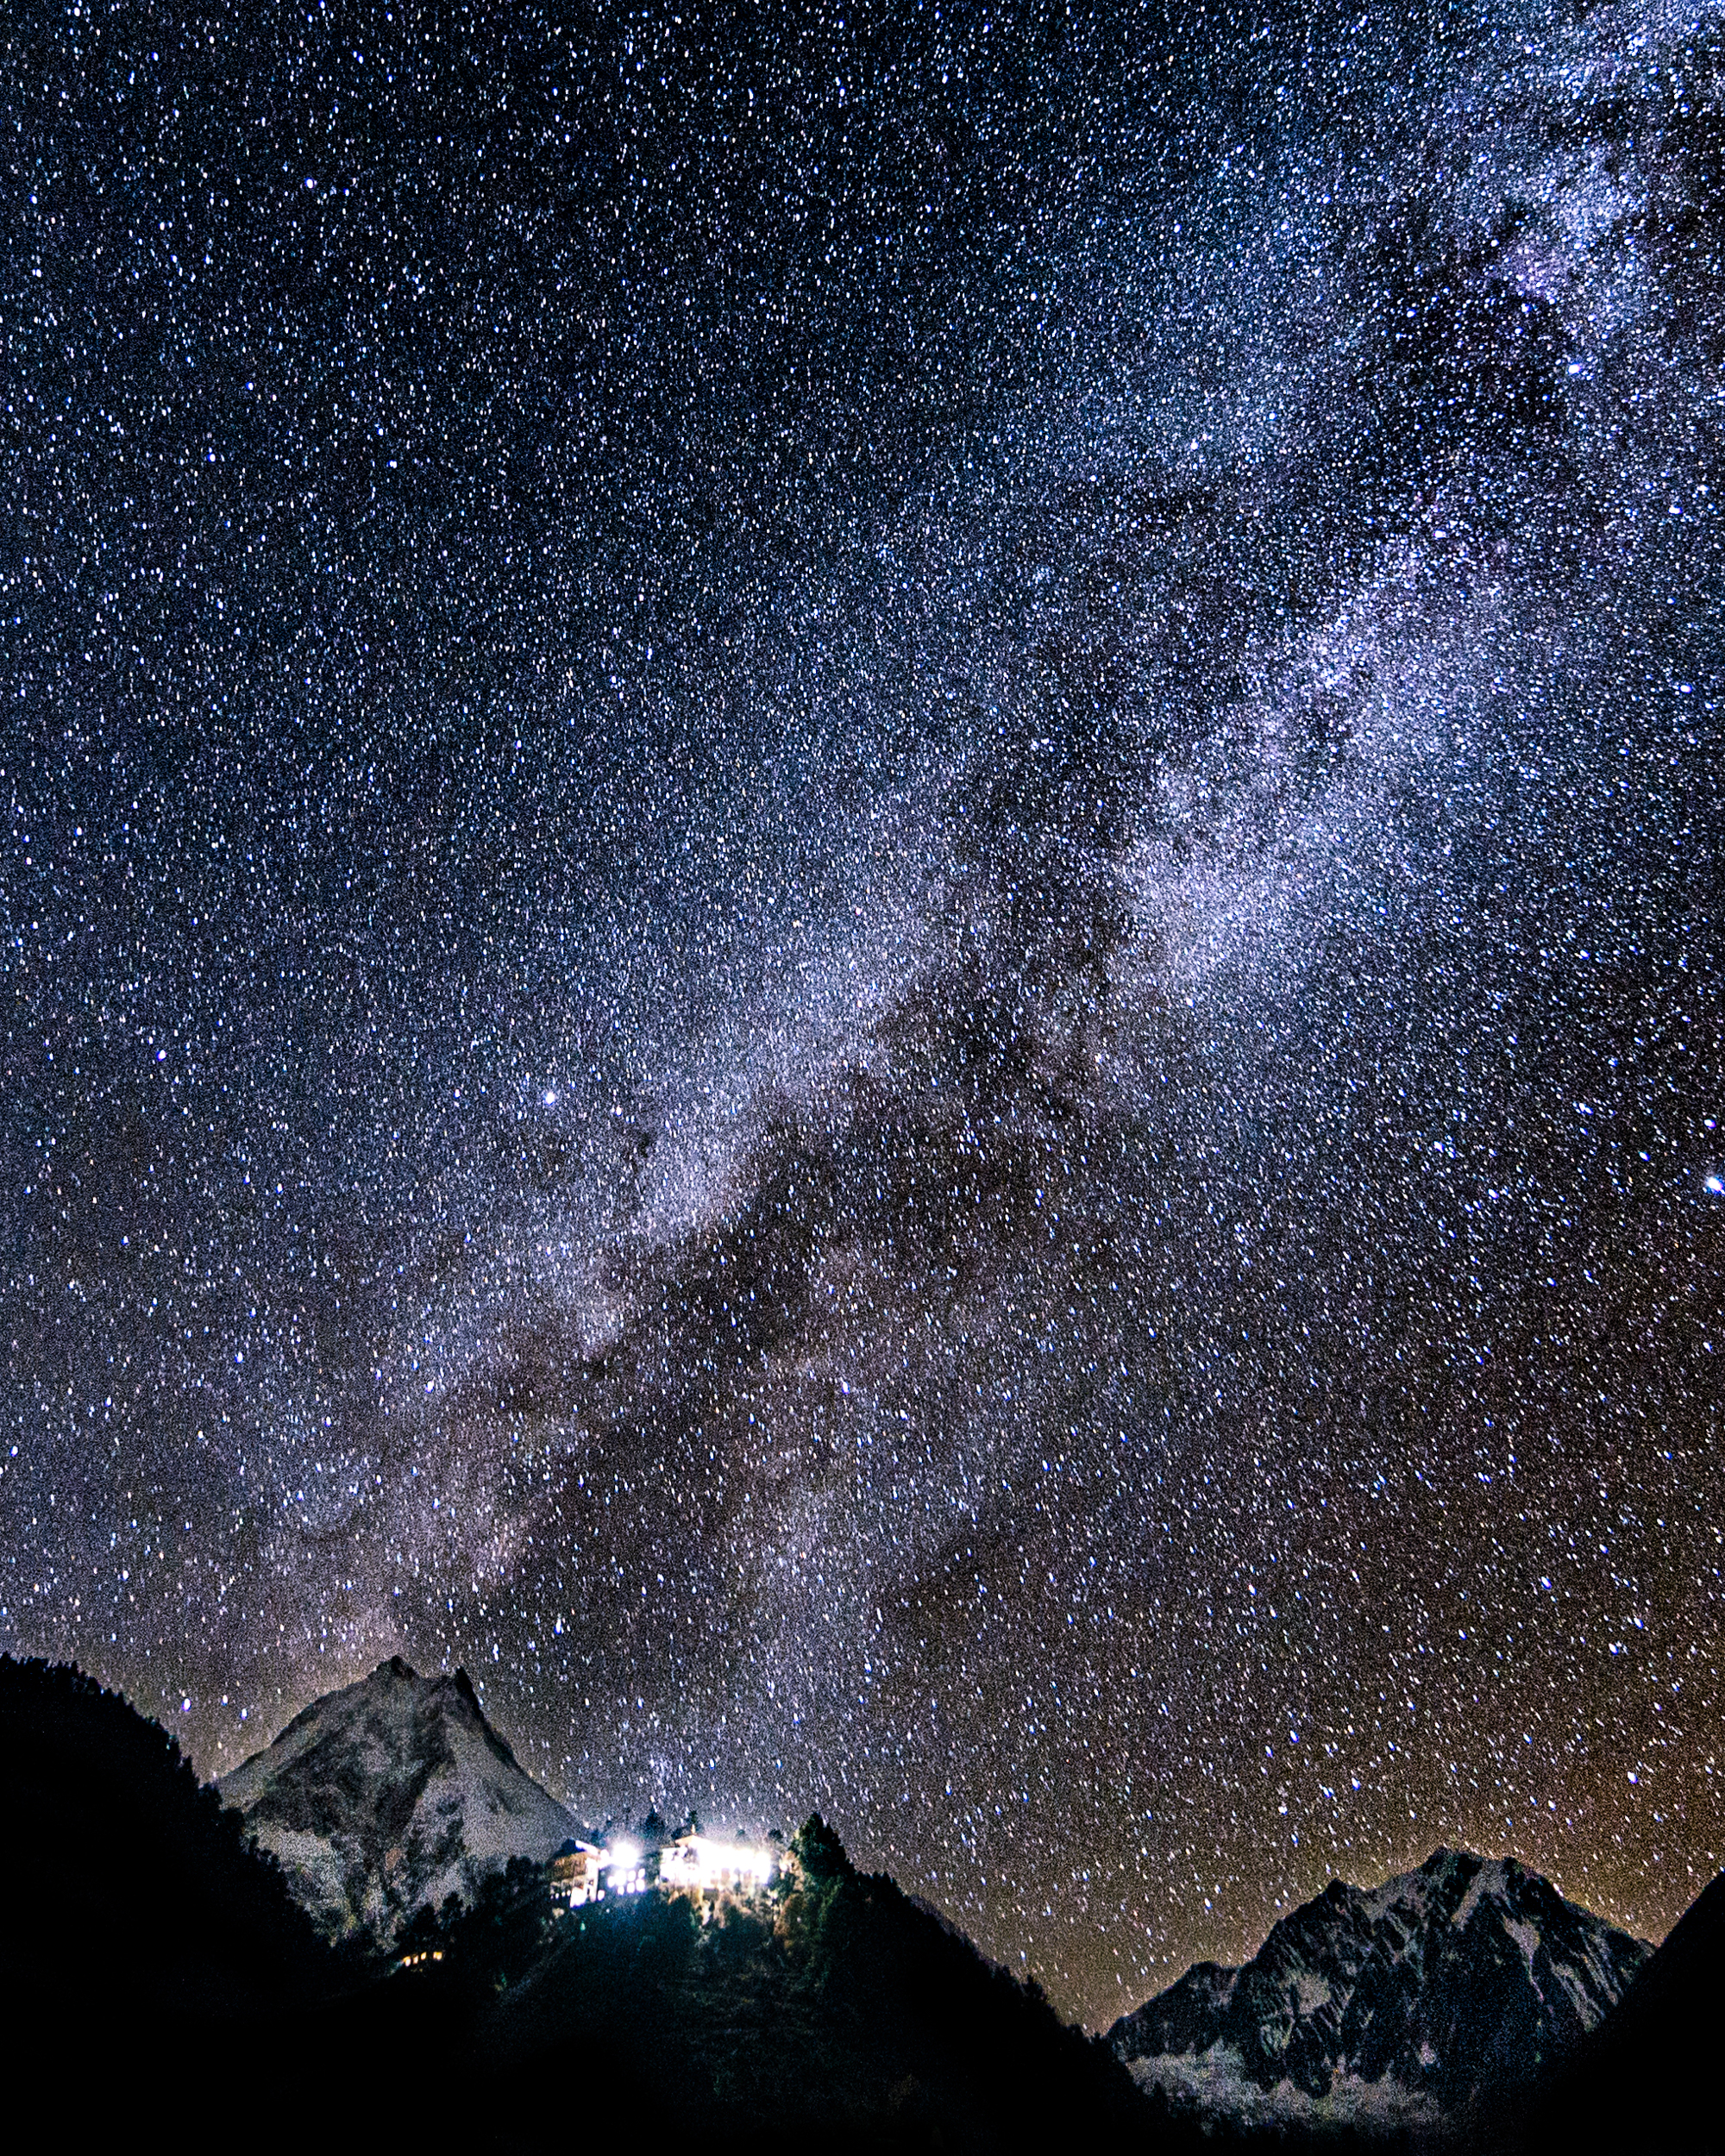 The Milky Way splashed above the eighth tallest mountain on the planet: Mount Manaslu (8,106 m).